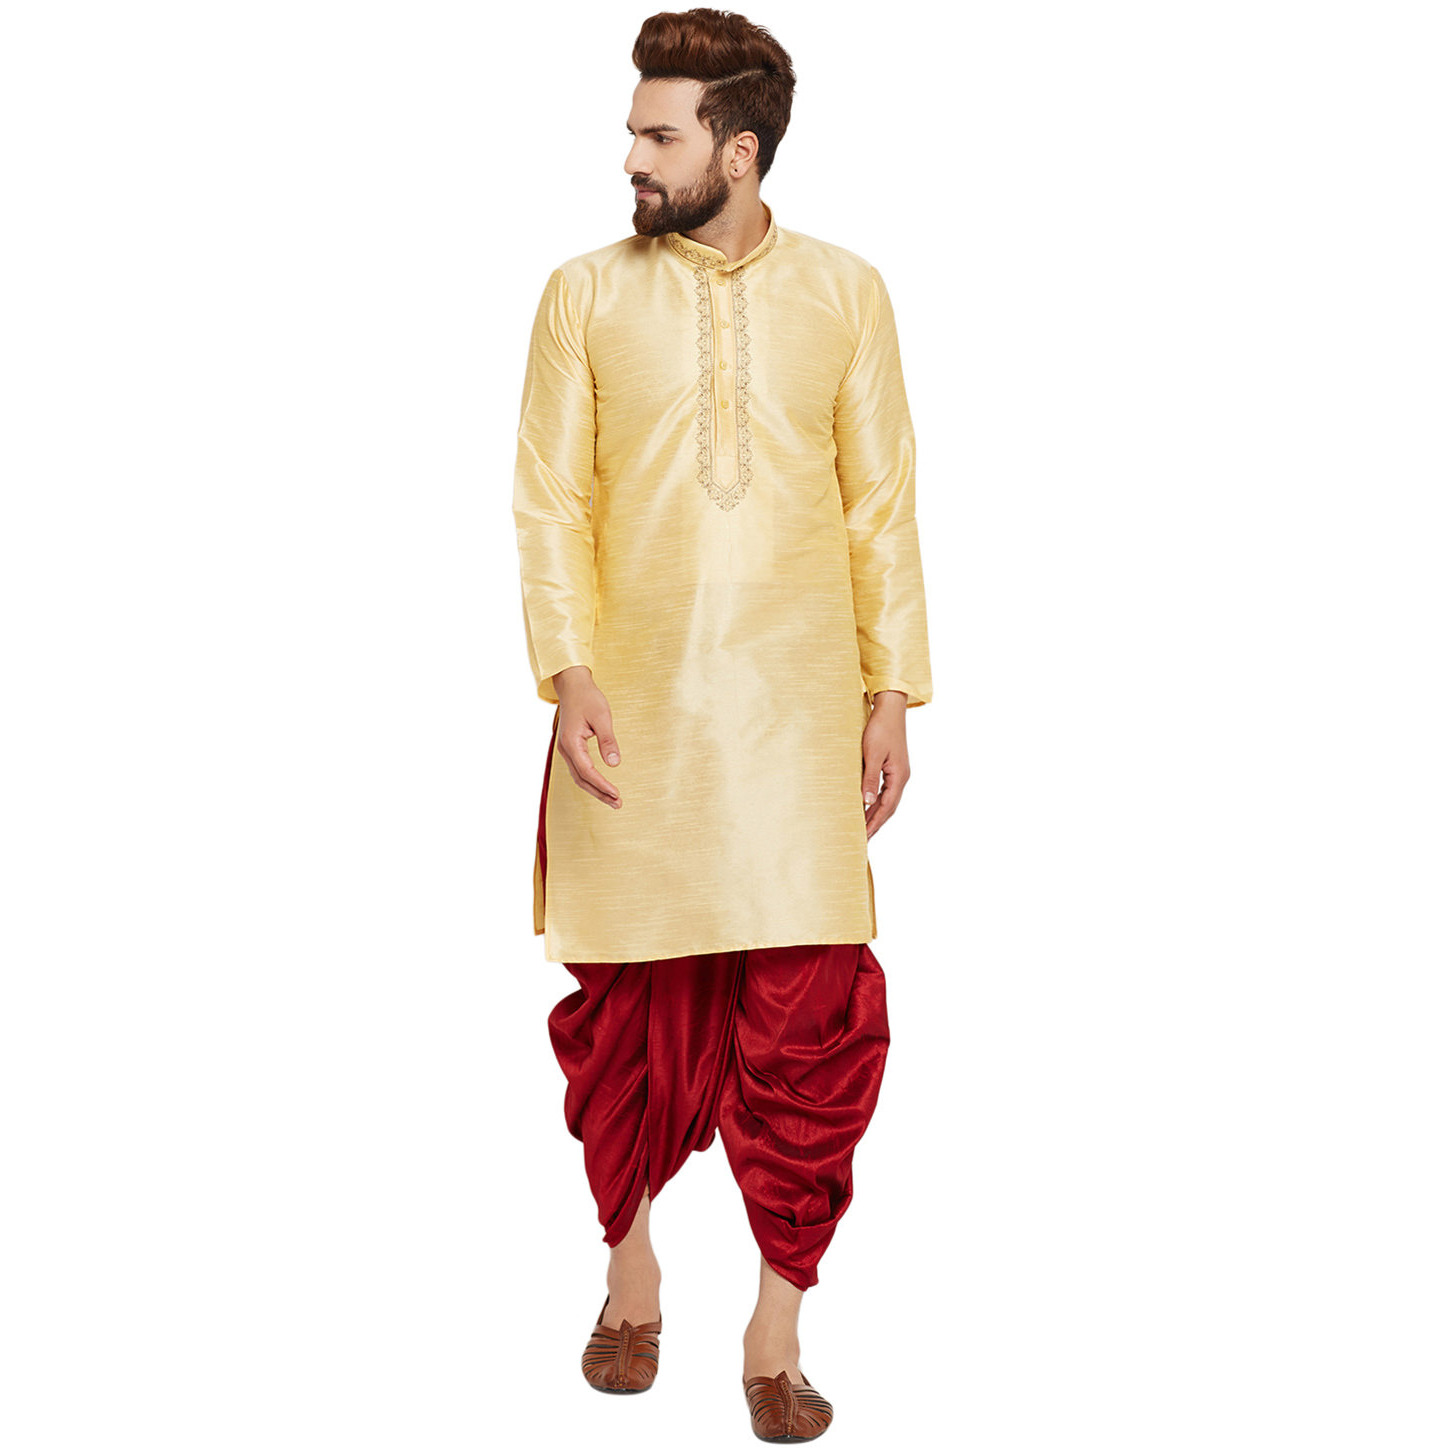 a98c0e04e6 Buy Online Sojanya (Since 1958)B Men s Traditional Ethnic Wear Dupion Silk  Gold and Royal Blue Embroidery Dhoti Kurta Set Regular Fit from USA -  Zifiti.com ...